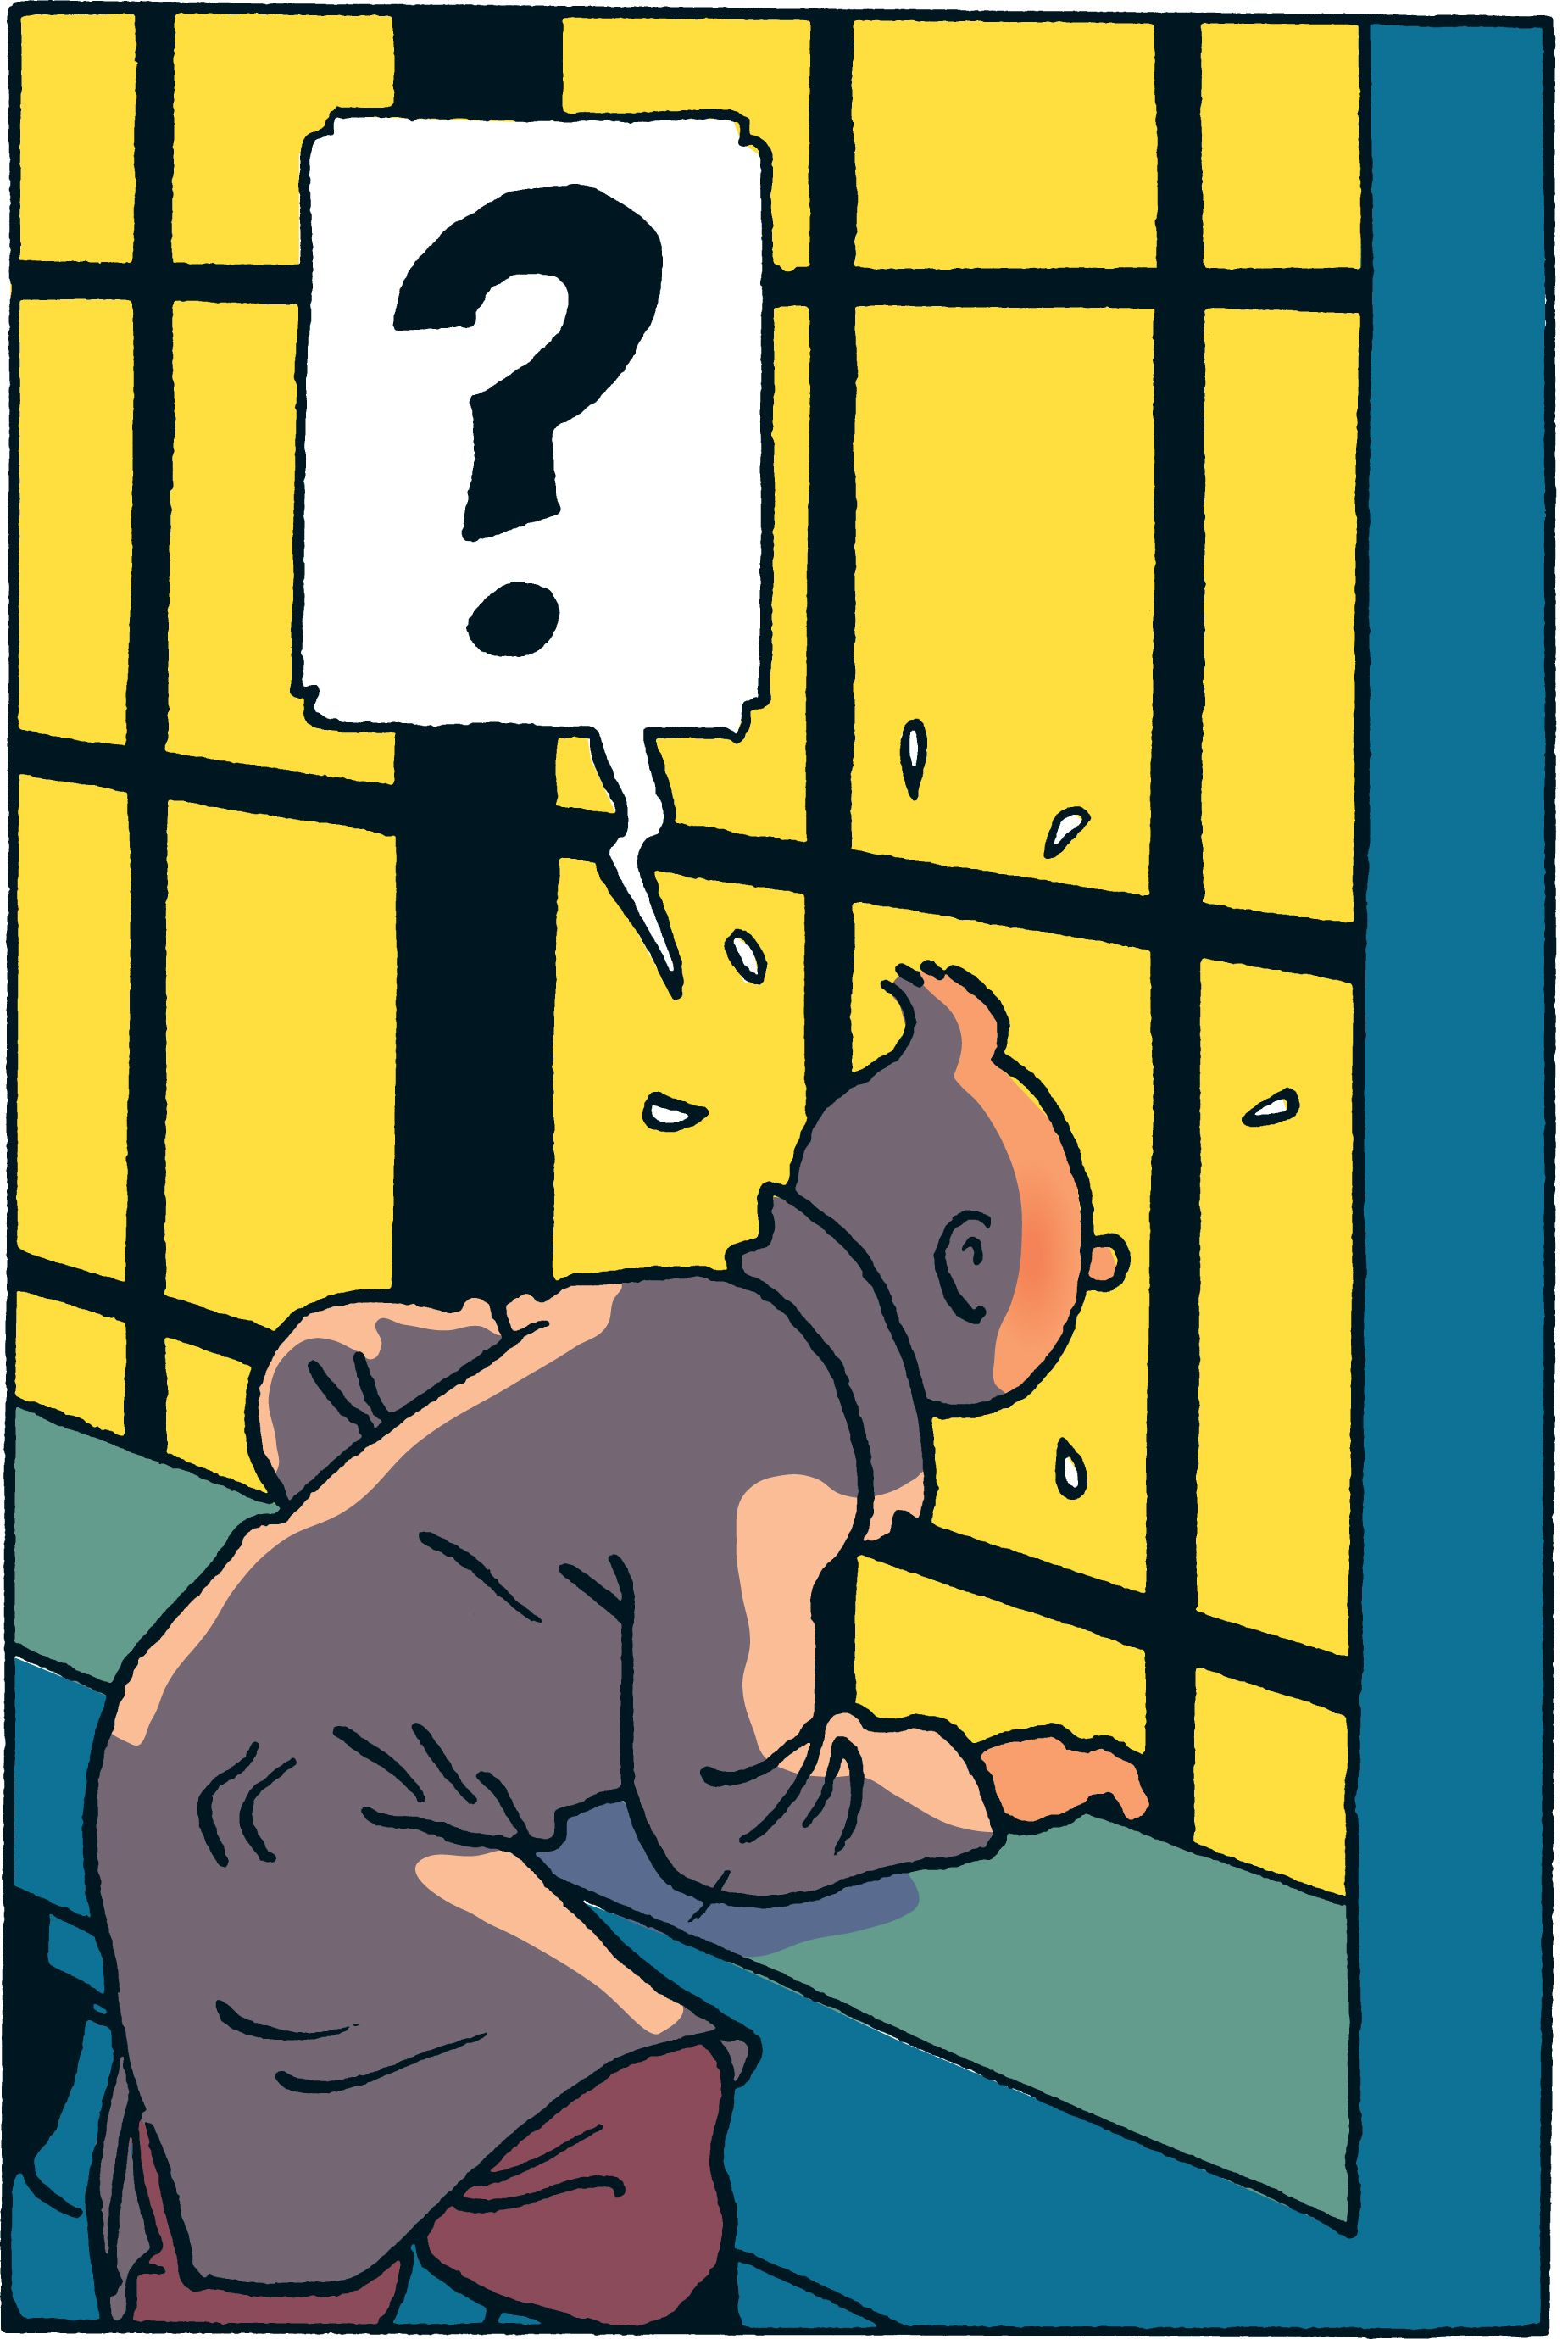 hergé exhibition somerset house - until 31 january 2016